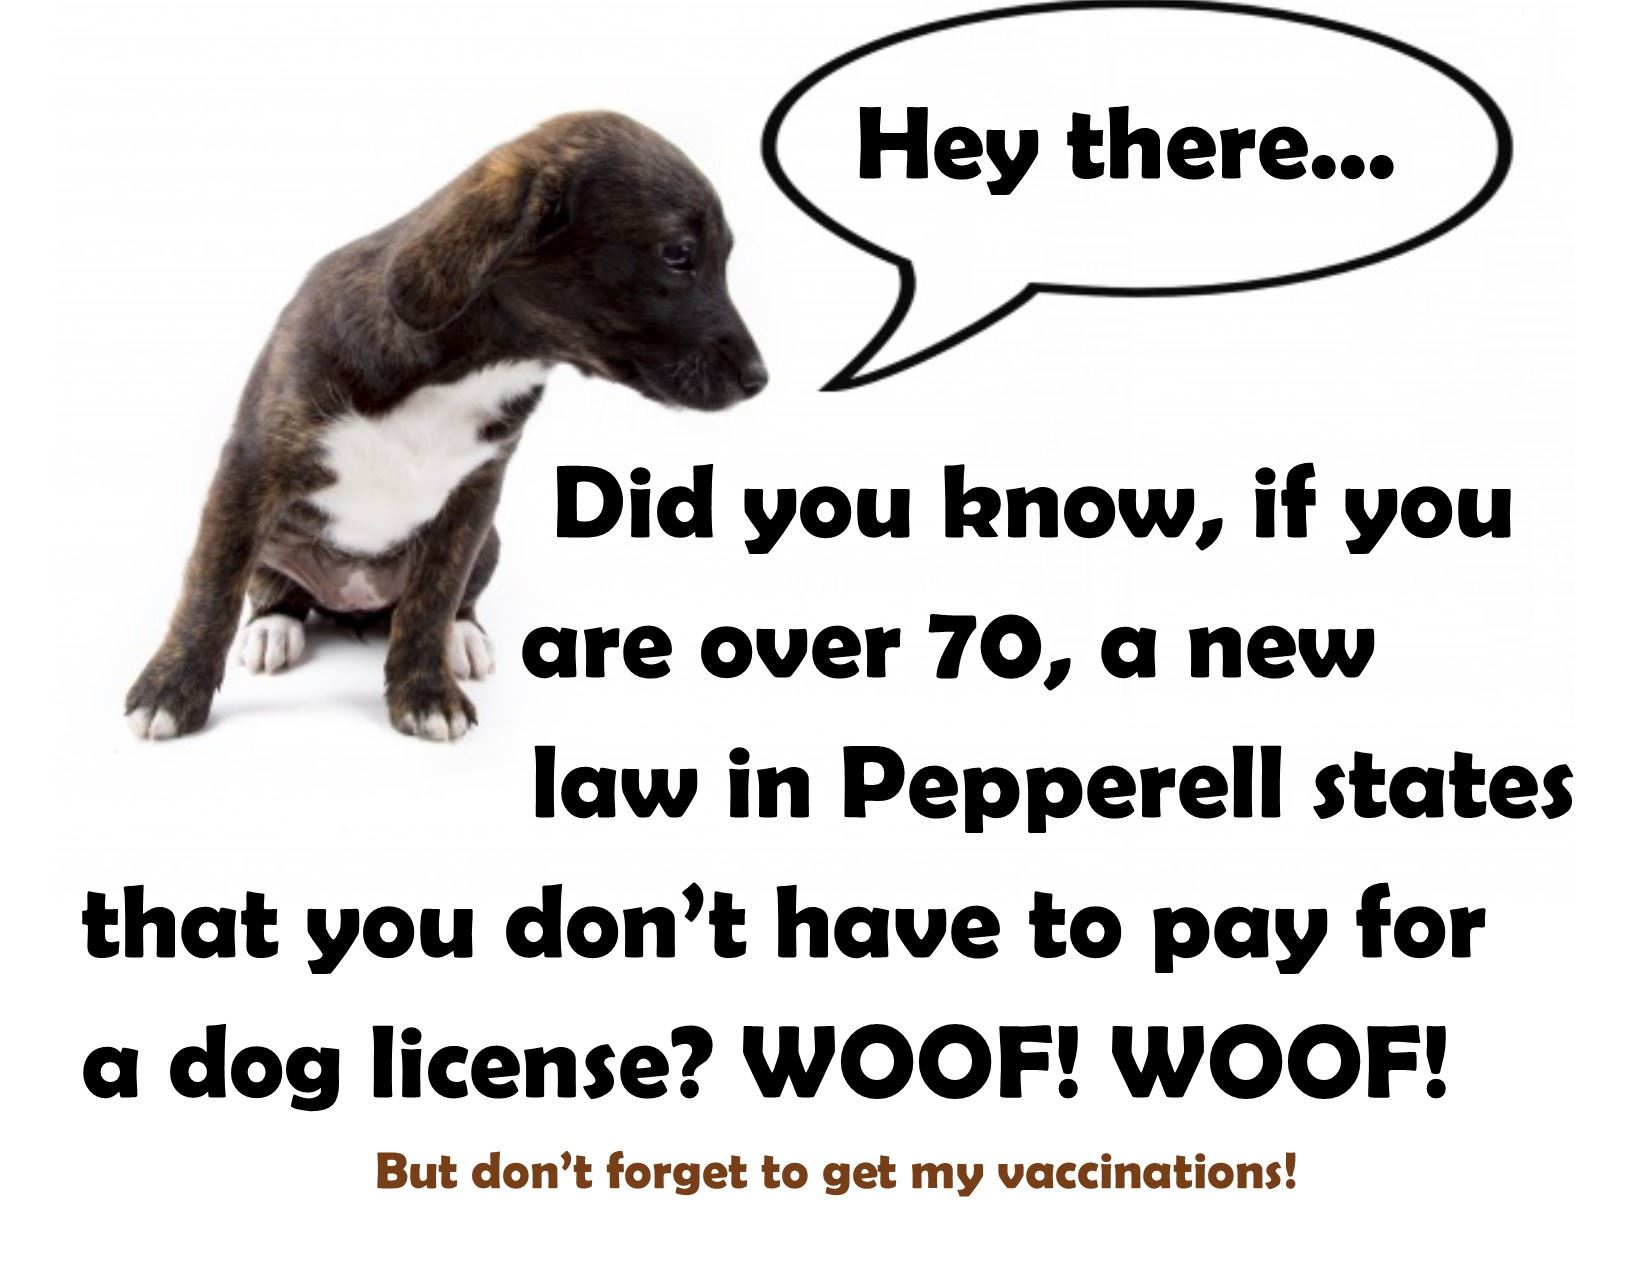 Dog License change